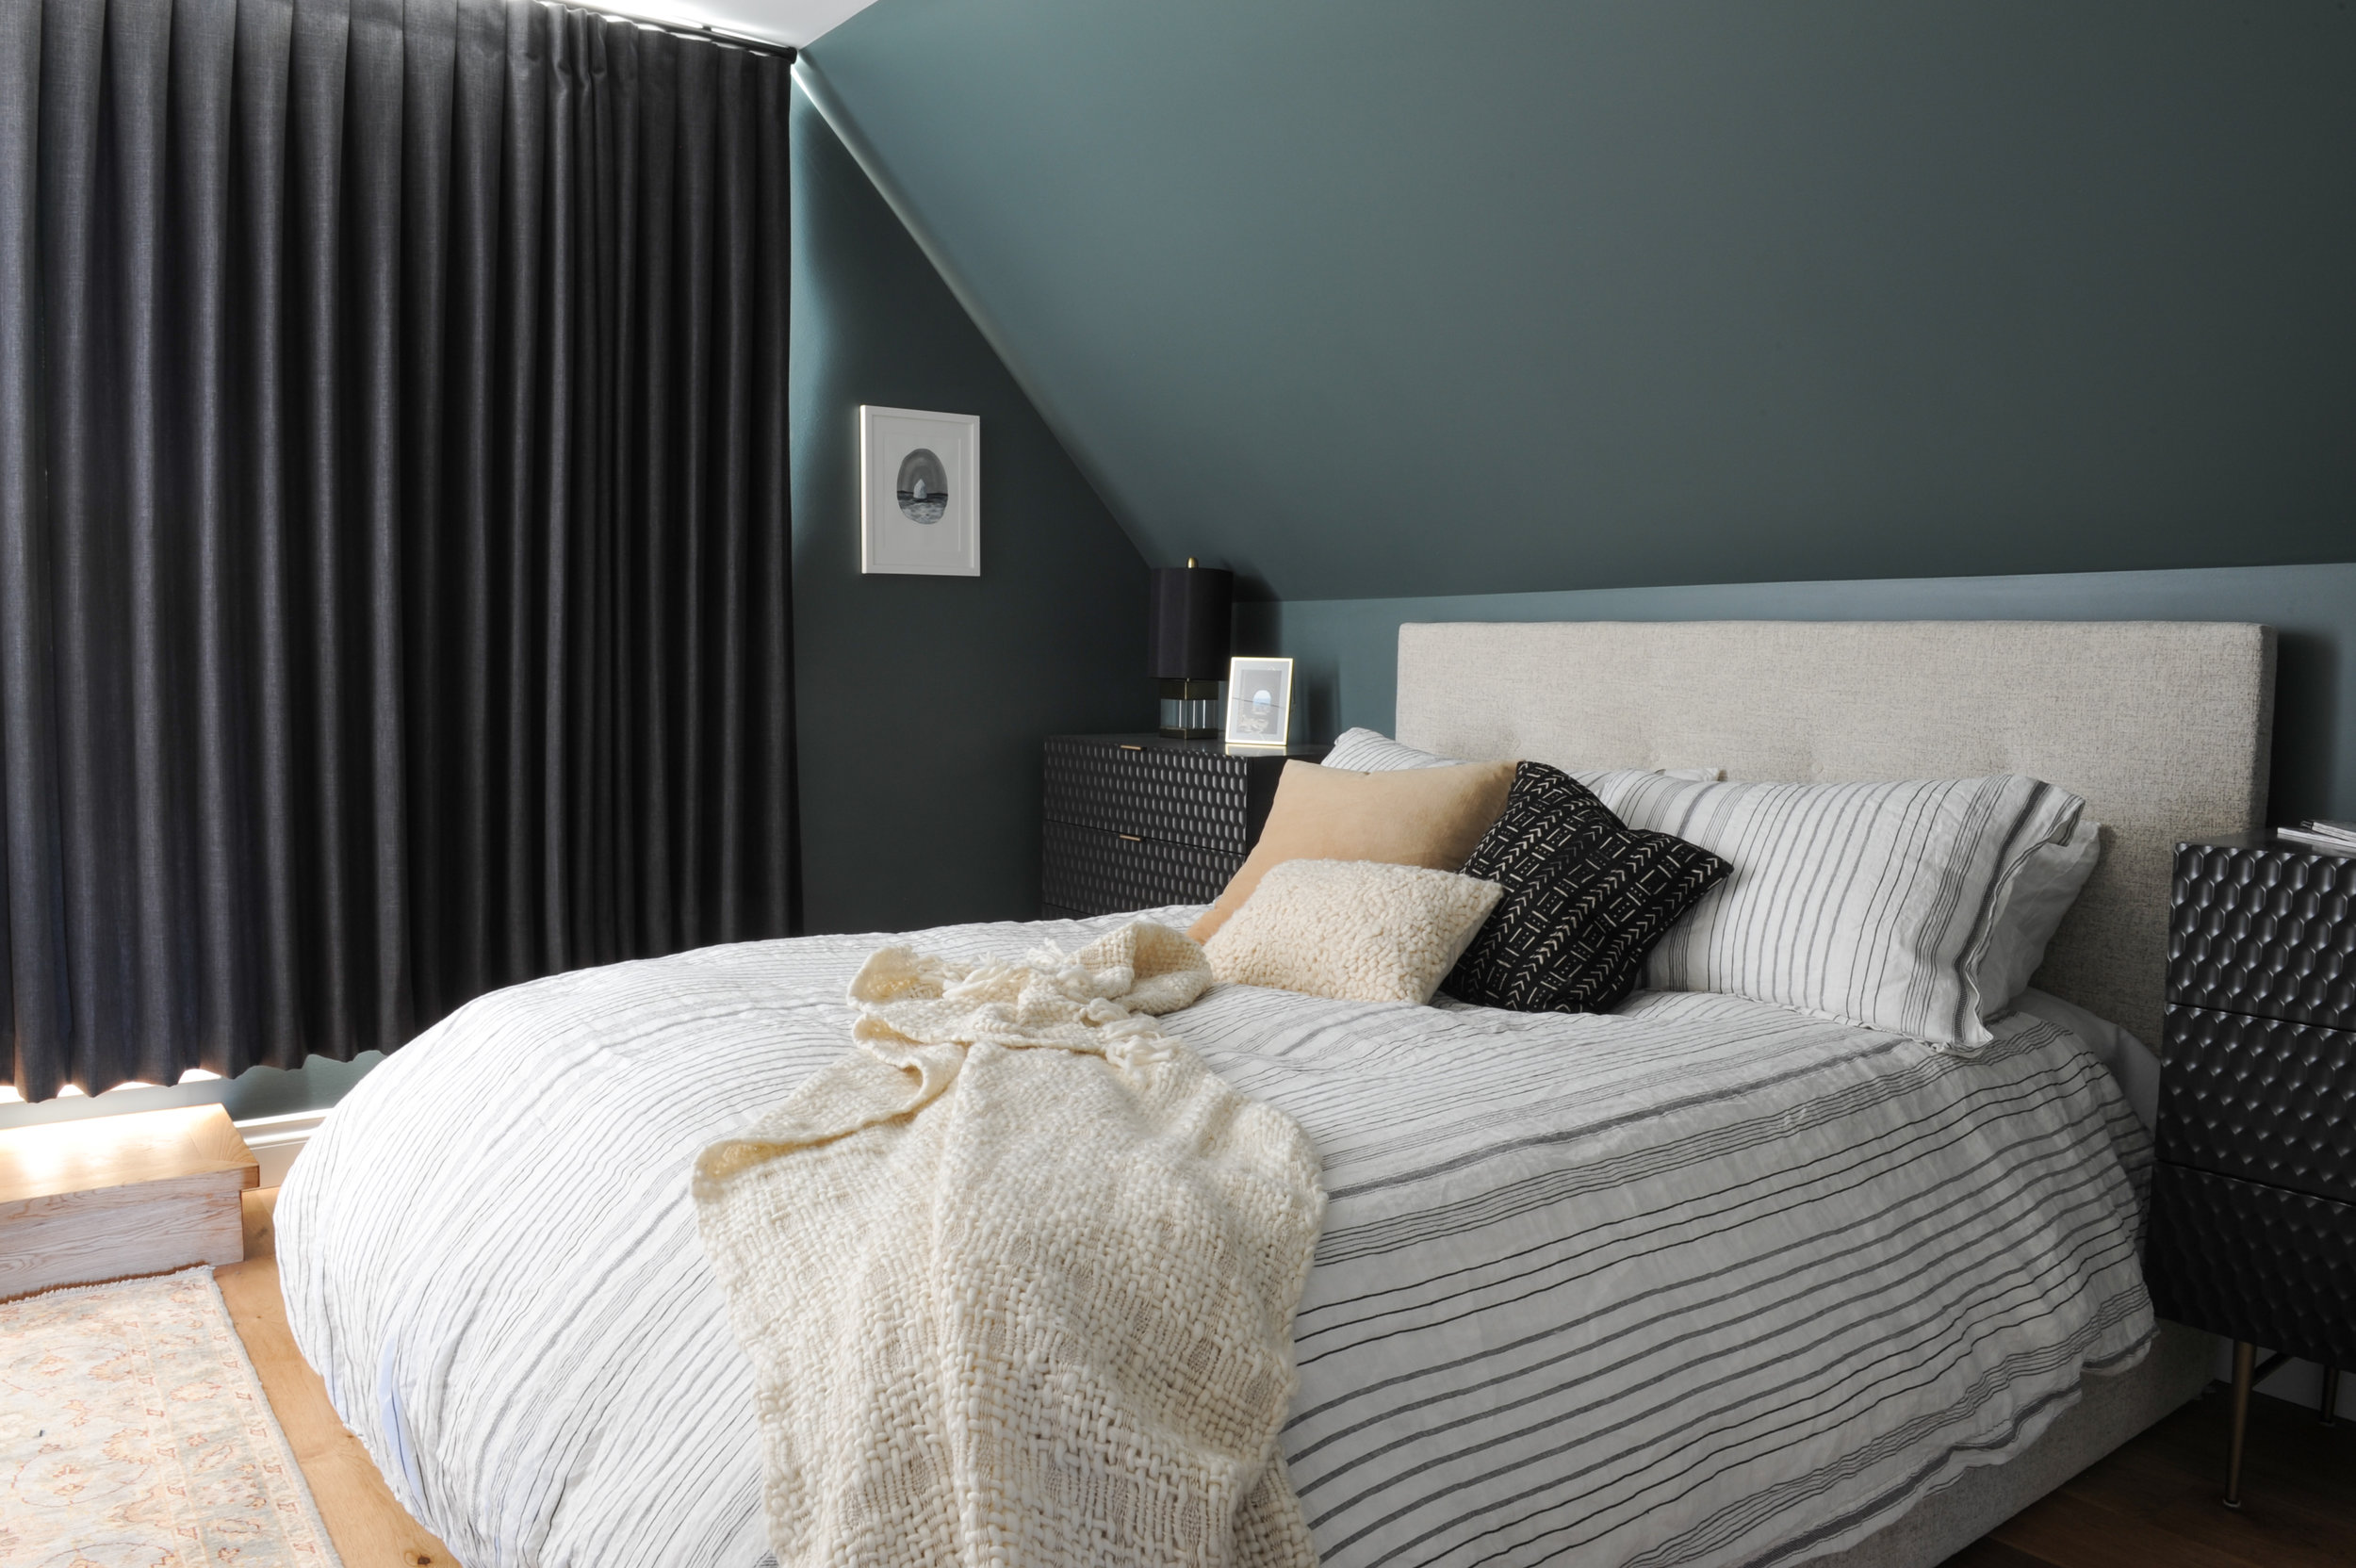 This bedroom has dark teal walls and blackout curtains for a dramatic effect. The bed has a beige headboard and sits next to a black textured night stand dresser.